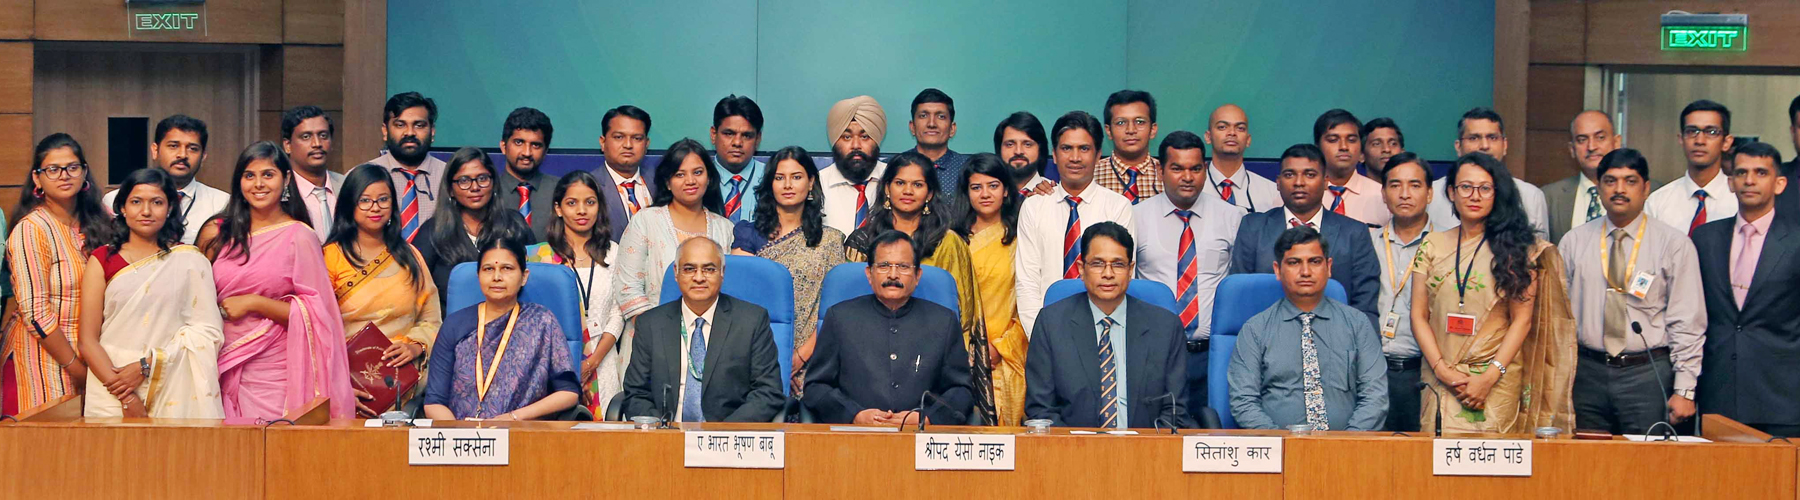 Group photo of DCC 2019 participants with Raksha Rajya Mantri Shri Shripad Naik and senior government officials at the valedictory function of Defence Correspondents Course 2019 in New Delhi on September 20, 2019